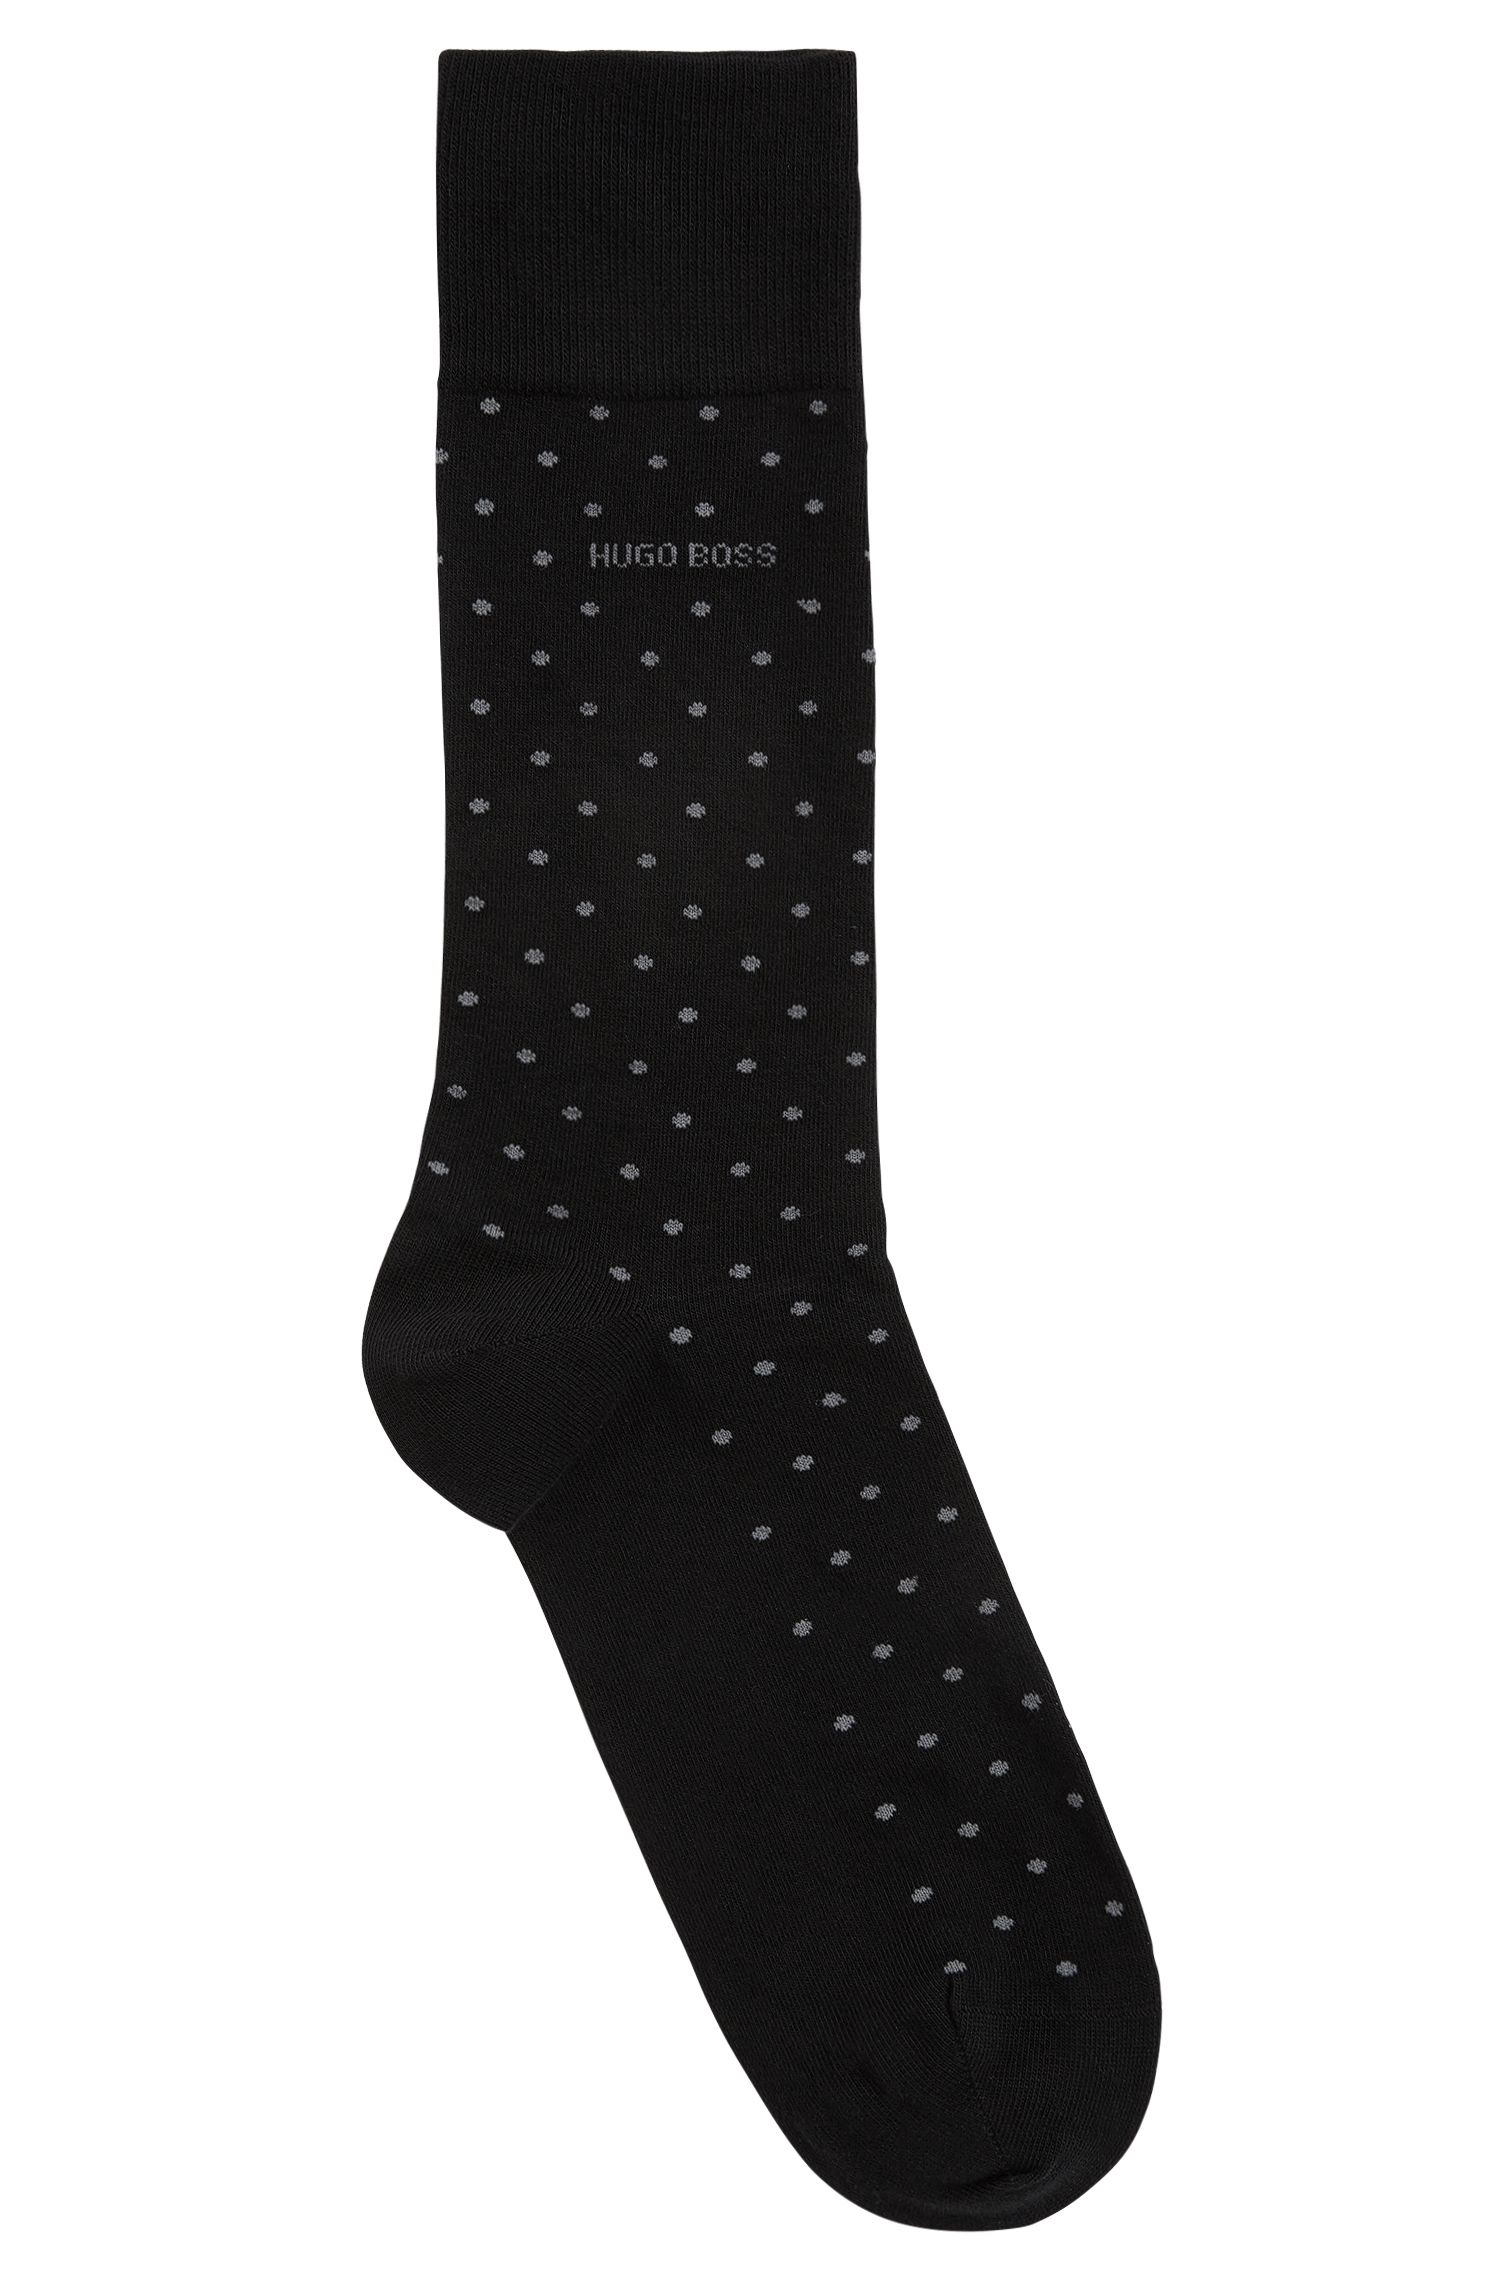 Dotted Stretch Cotton Socks | RS Dot US CC